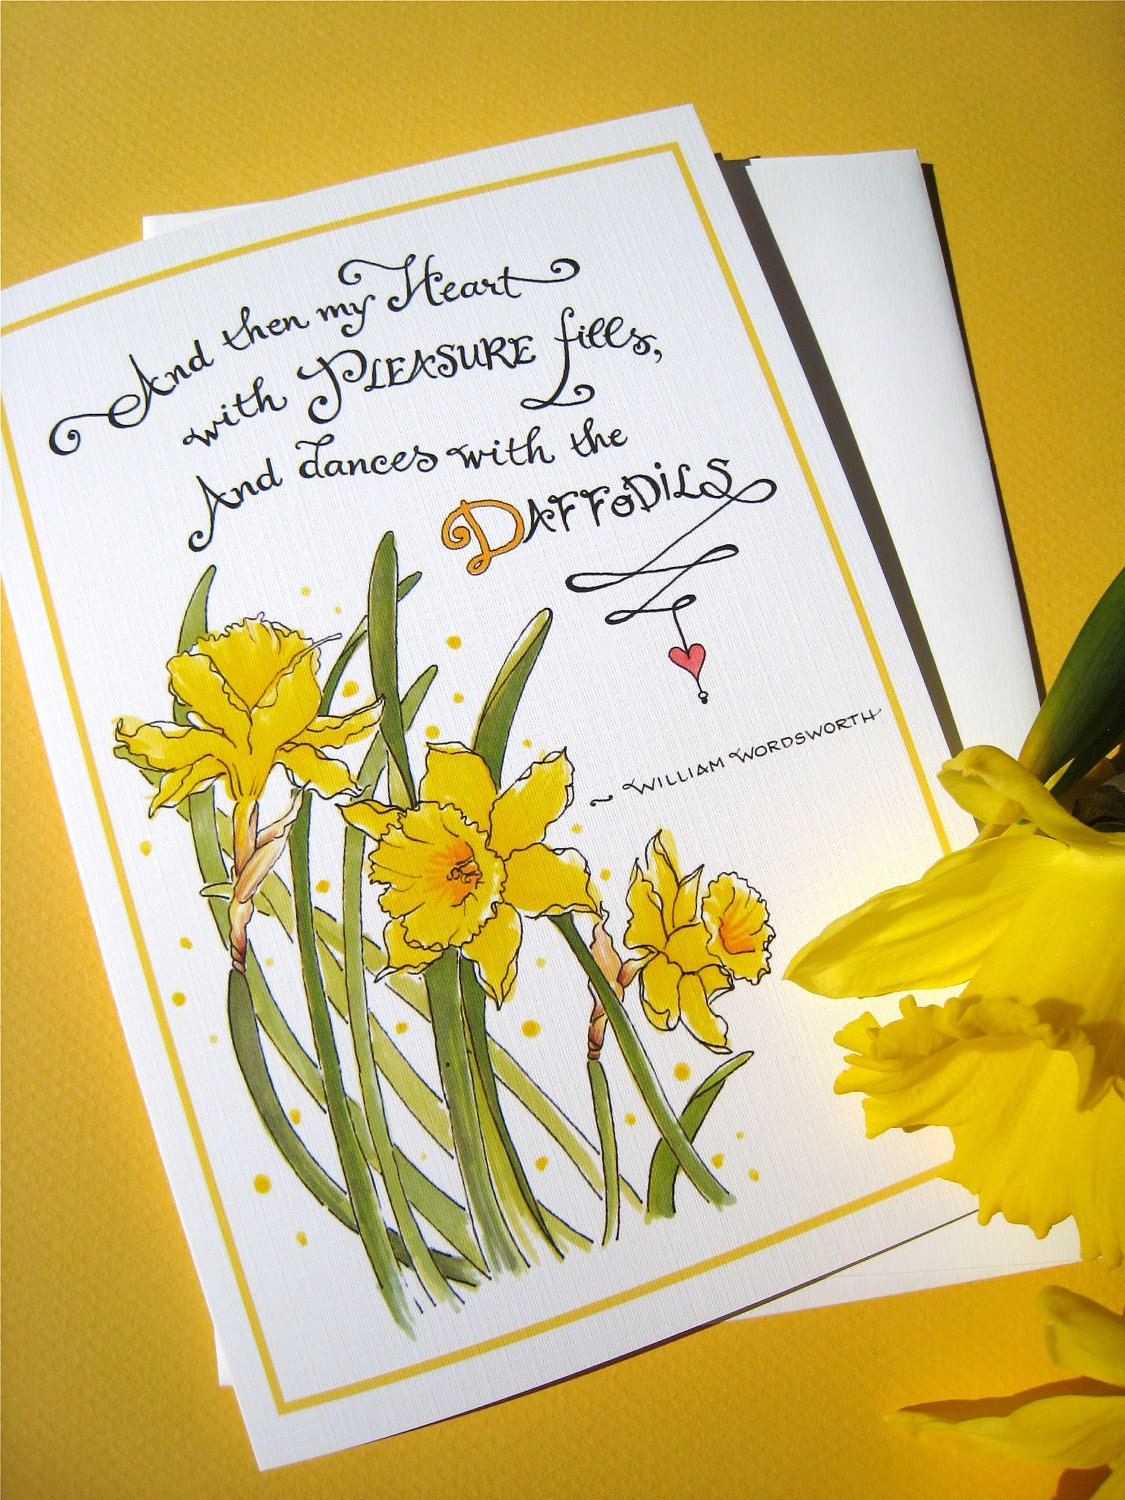 wordsworth and nature asthe daffodils essay